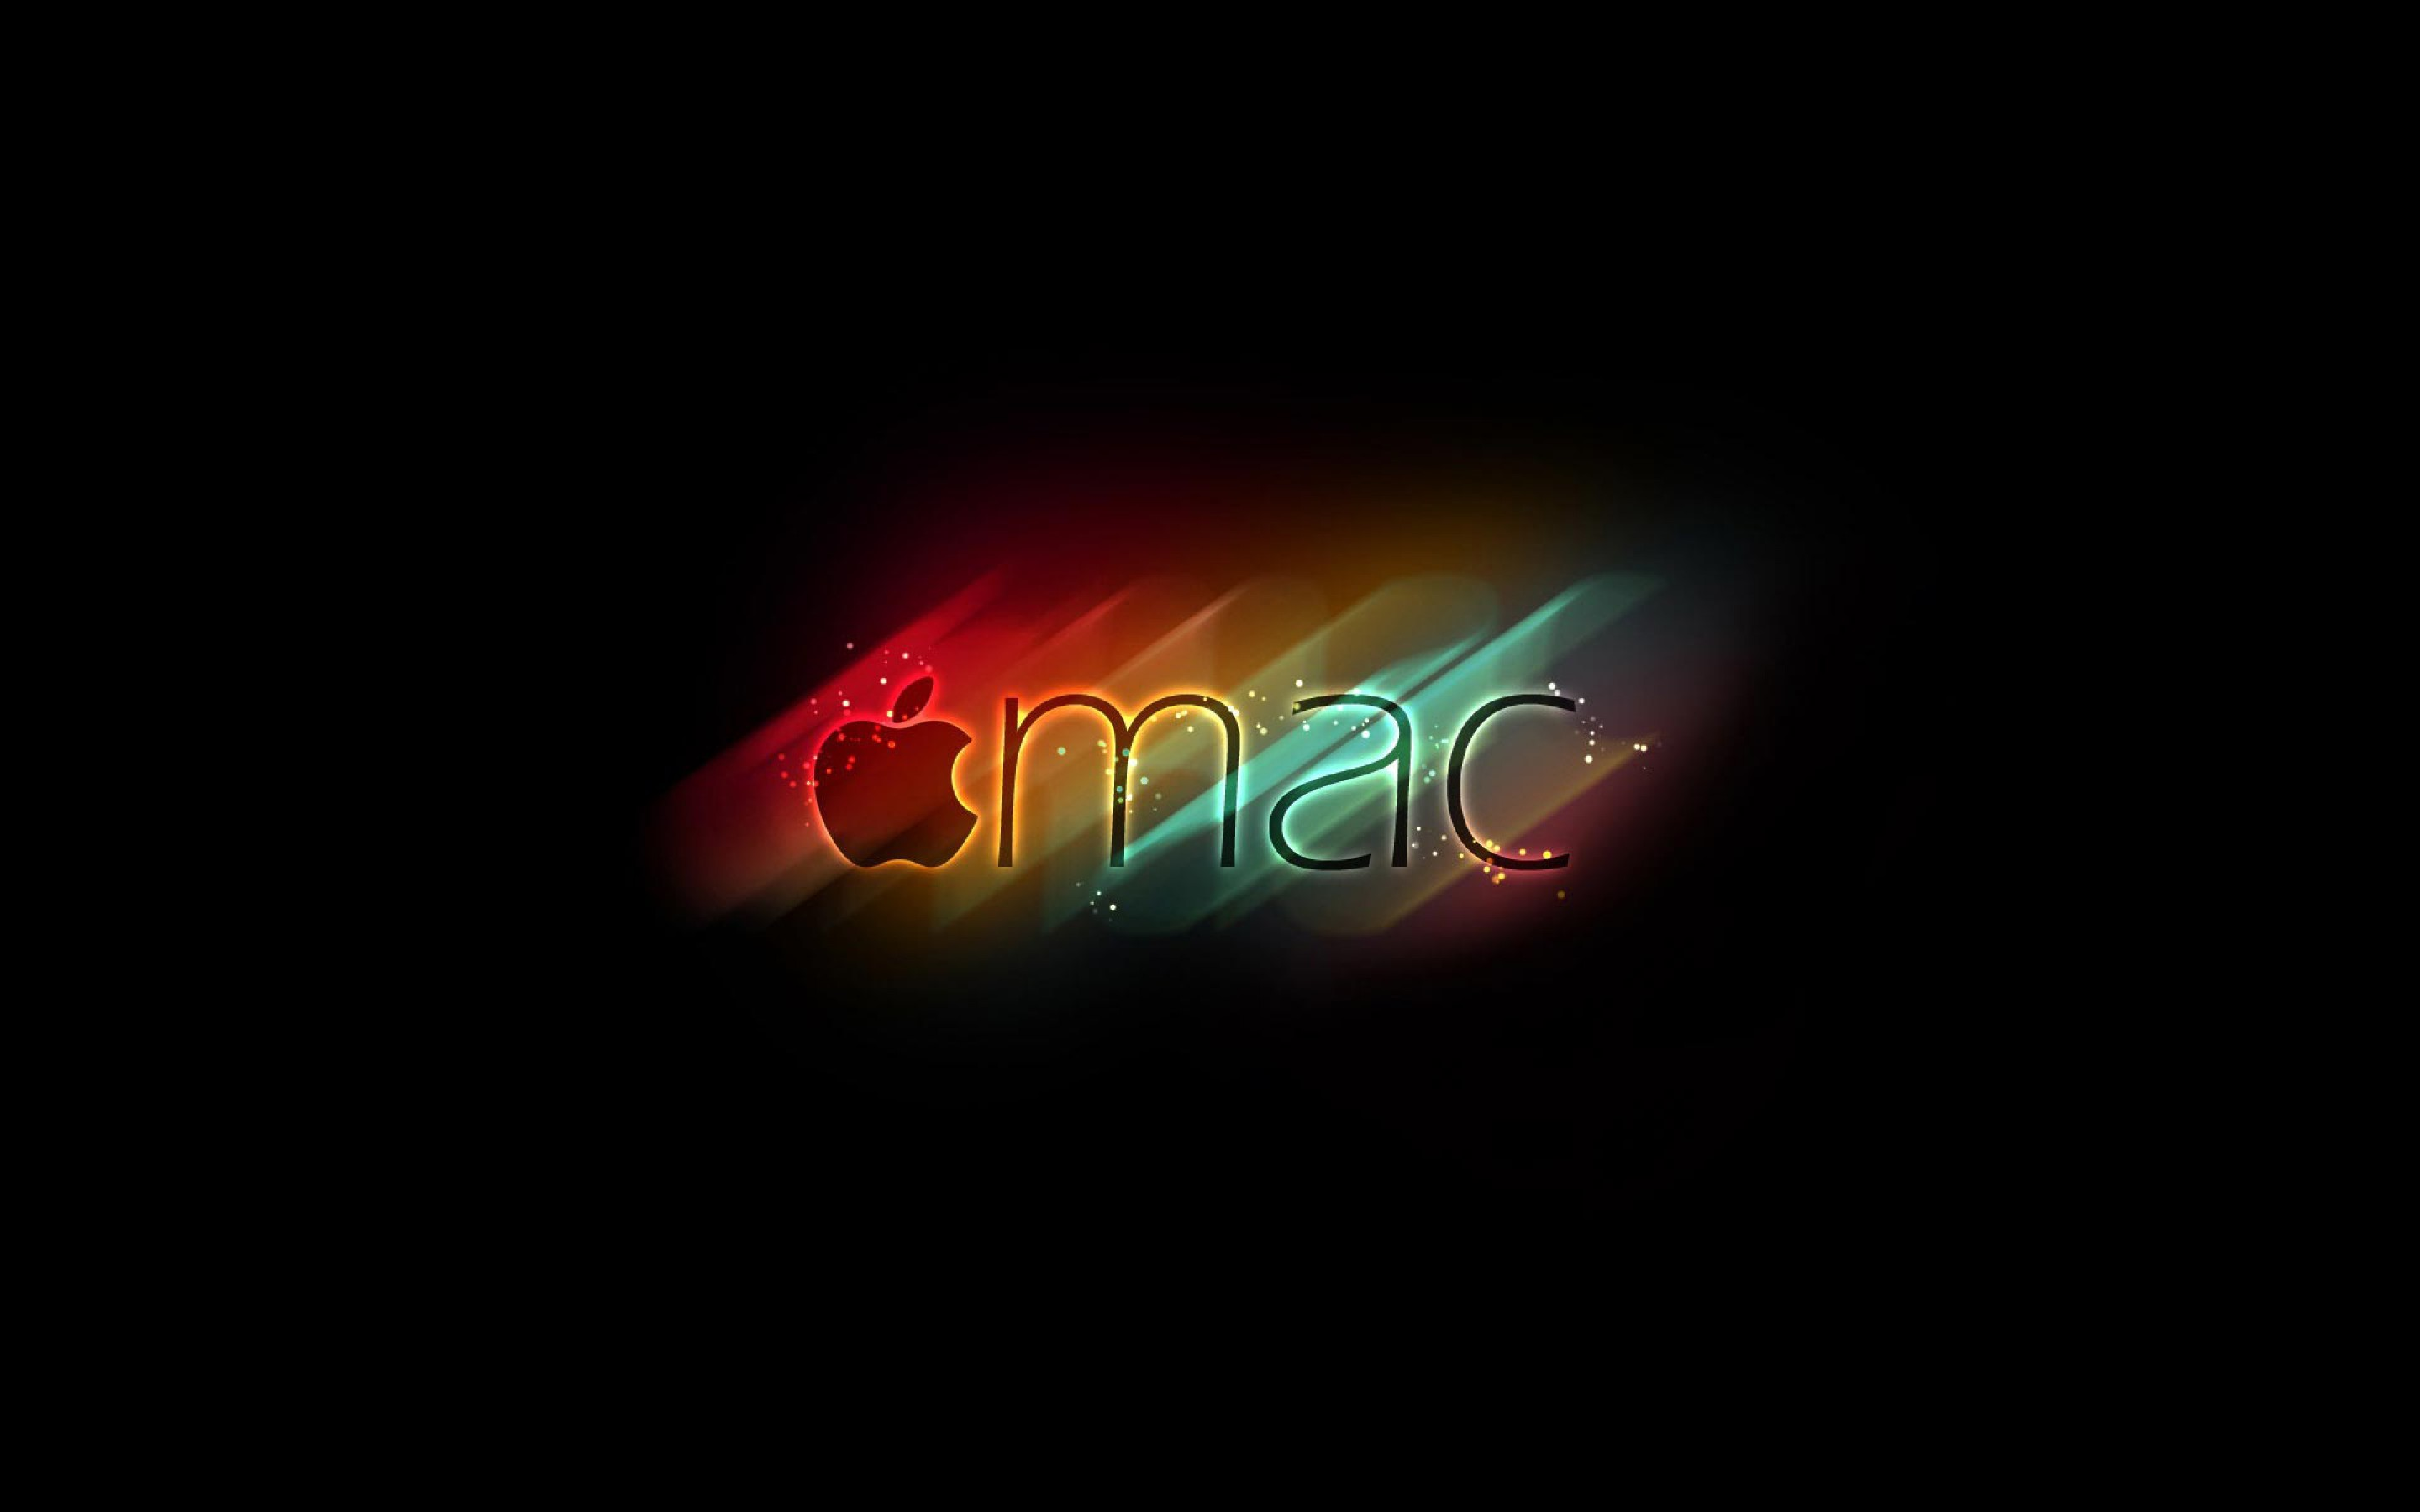 Hd Wallpapers 1080p Mac 65 Images